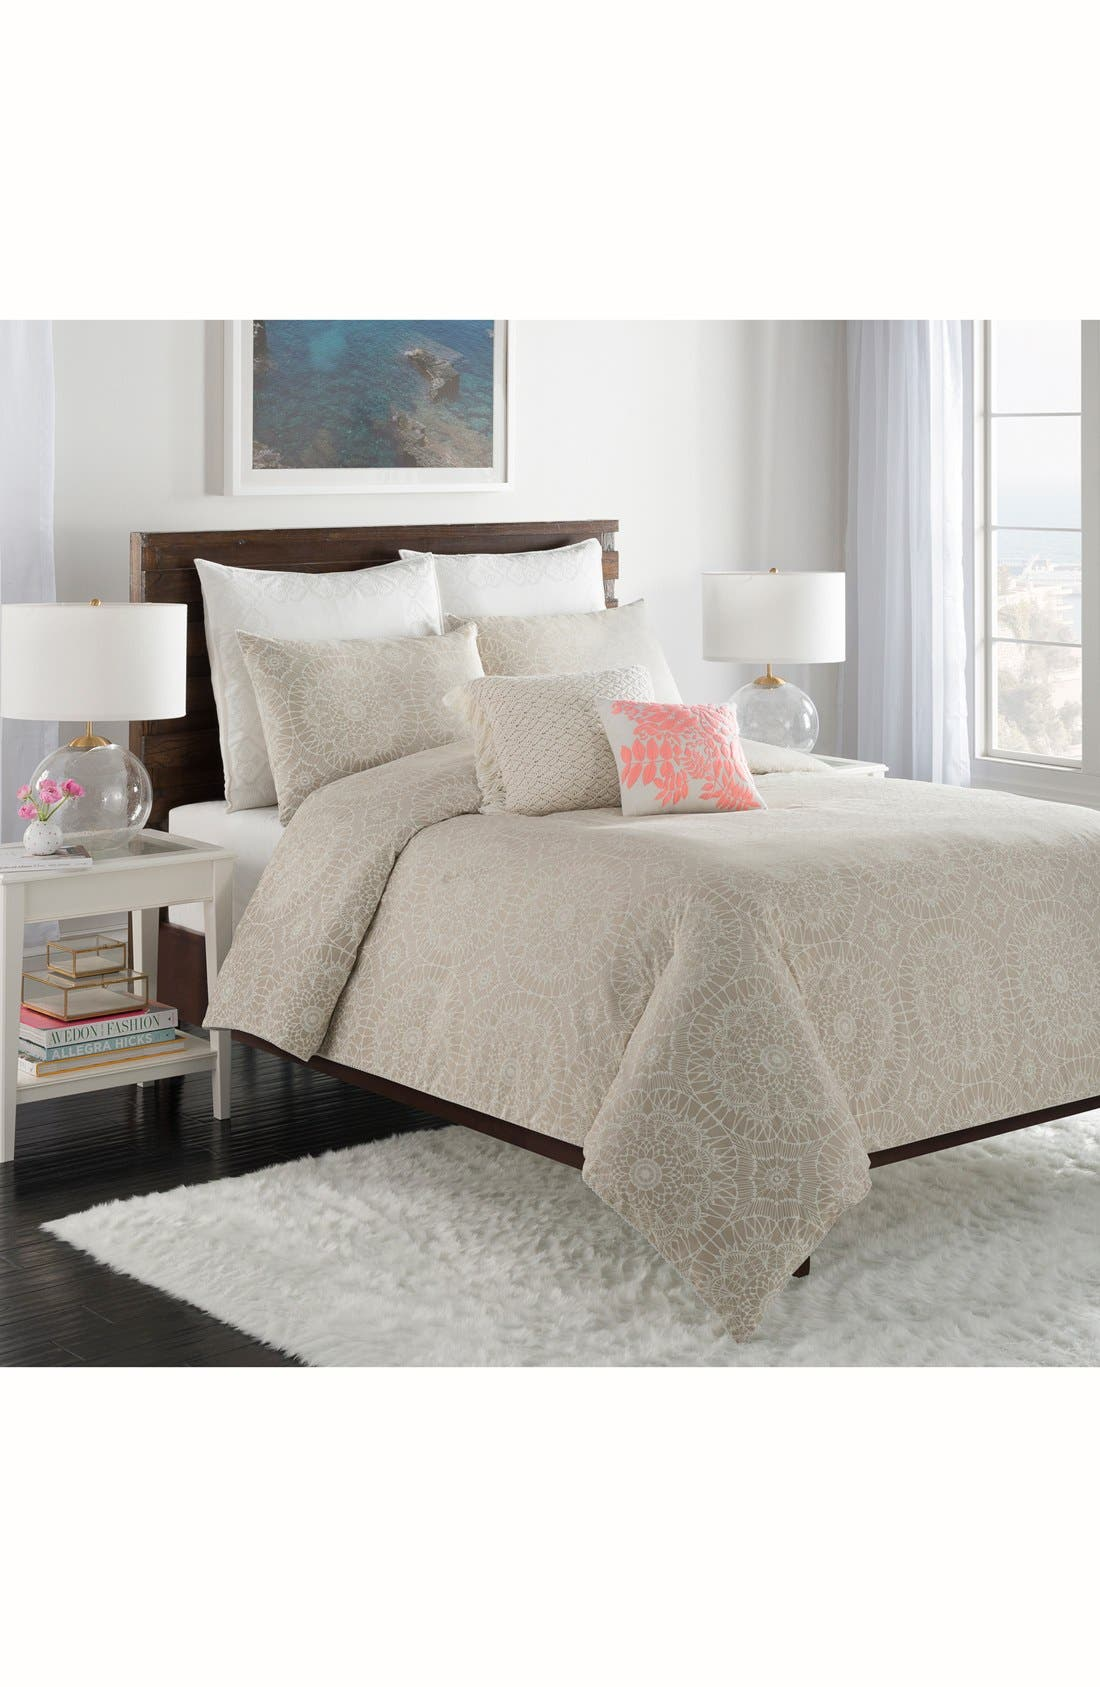 'Lace Medallion' Duvet Cover,                         Main,                         color, 250